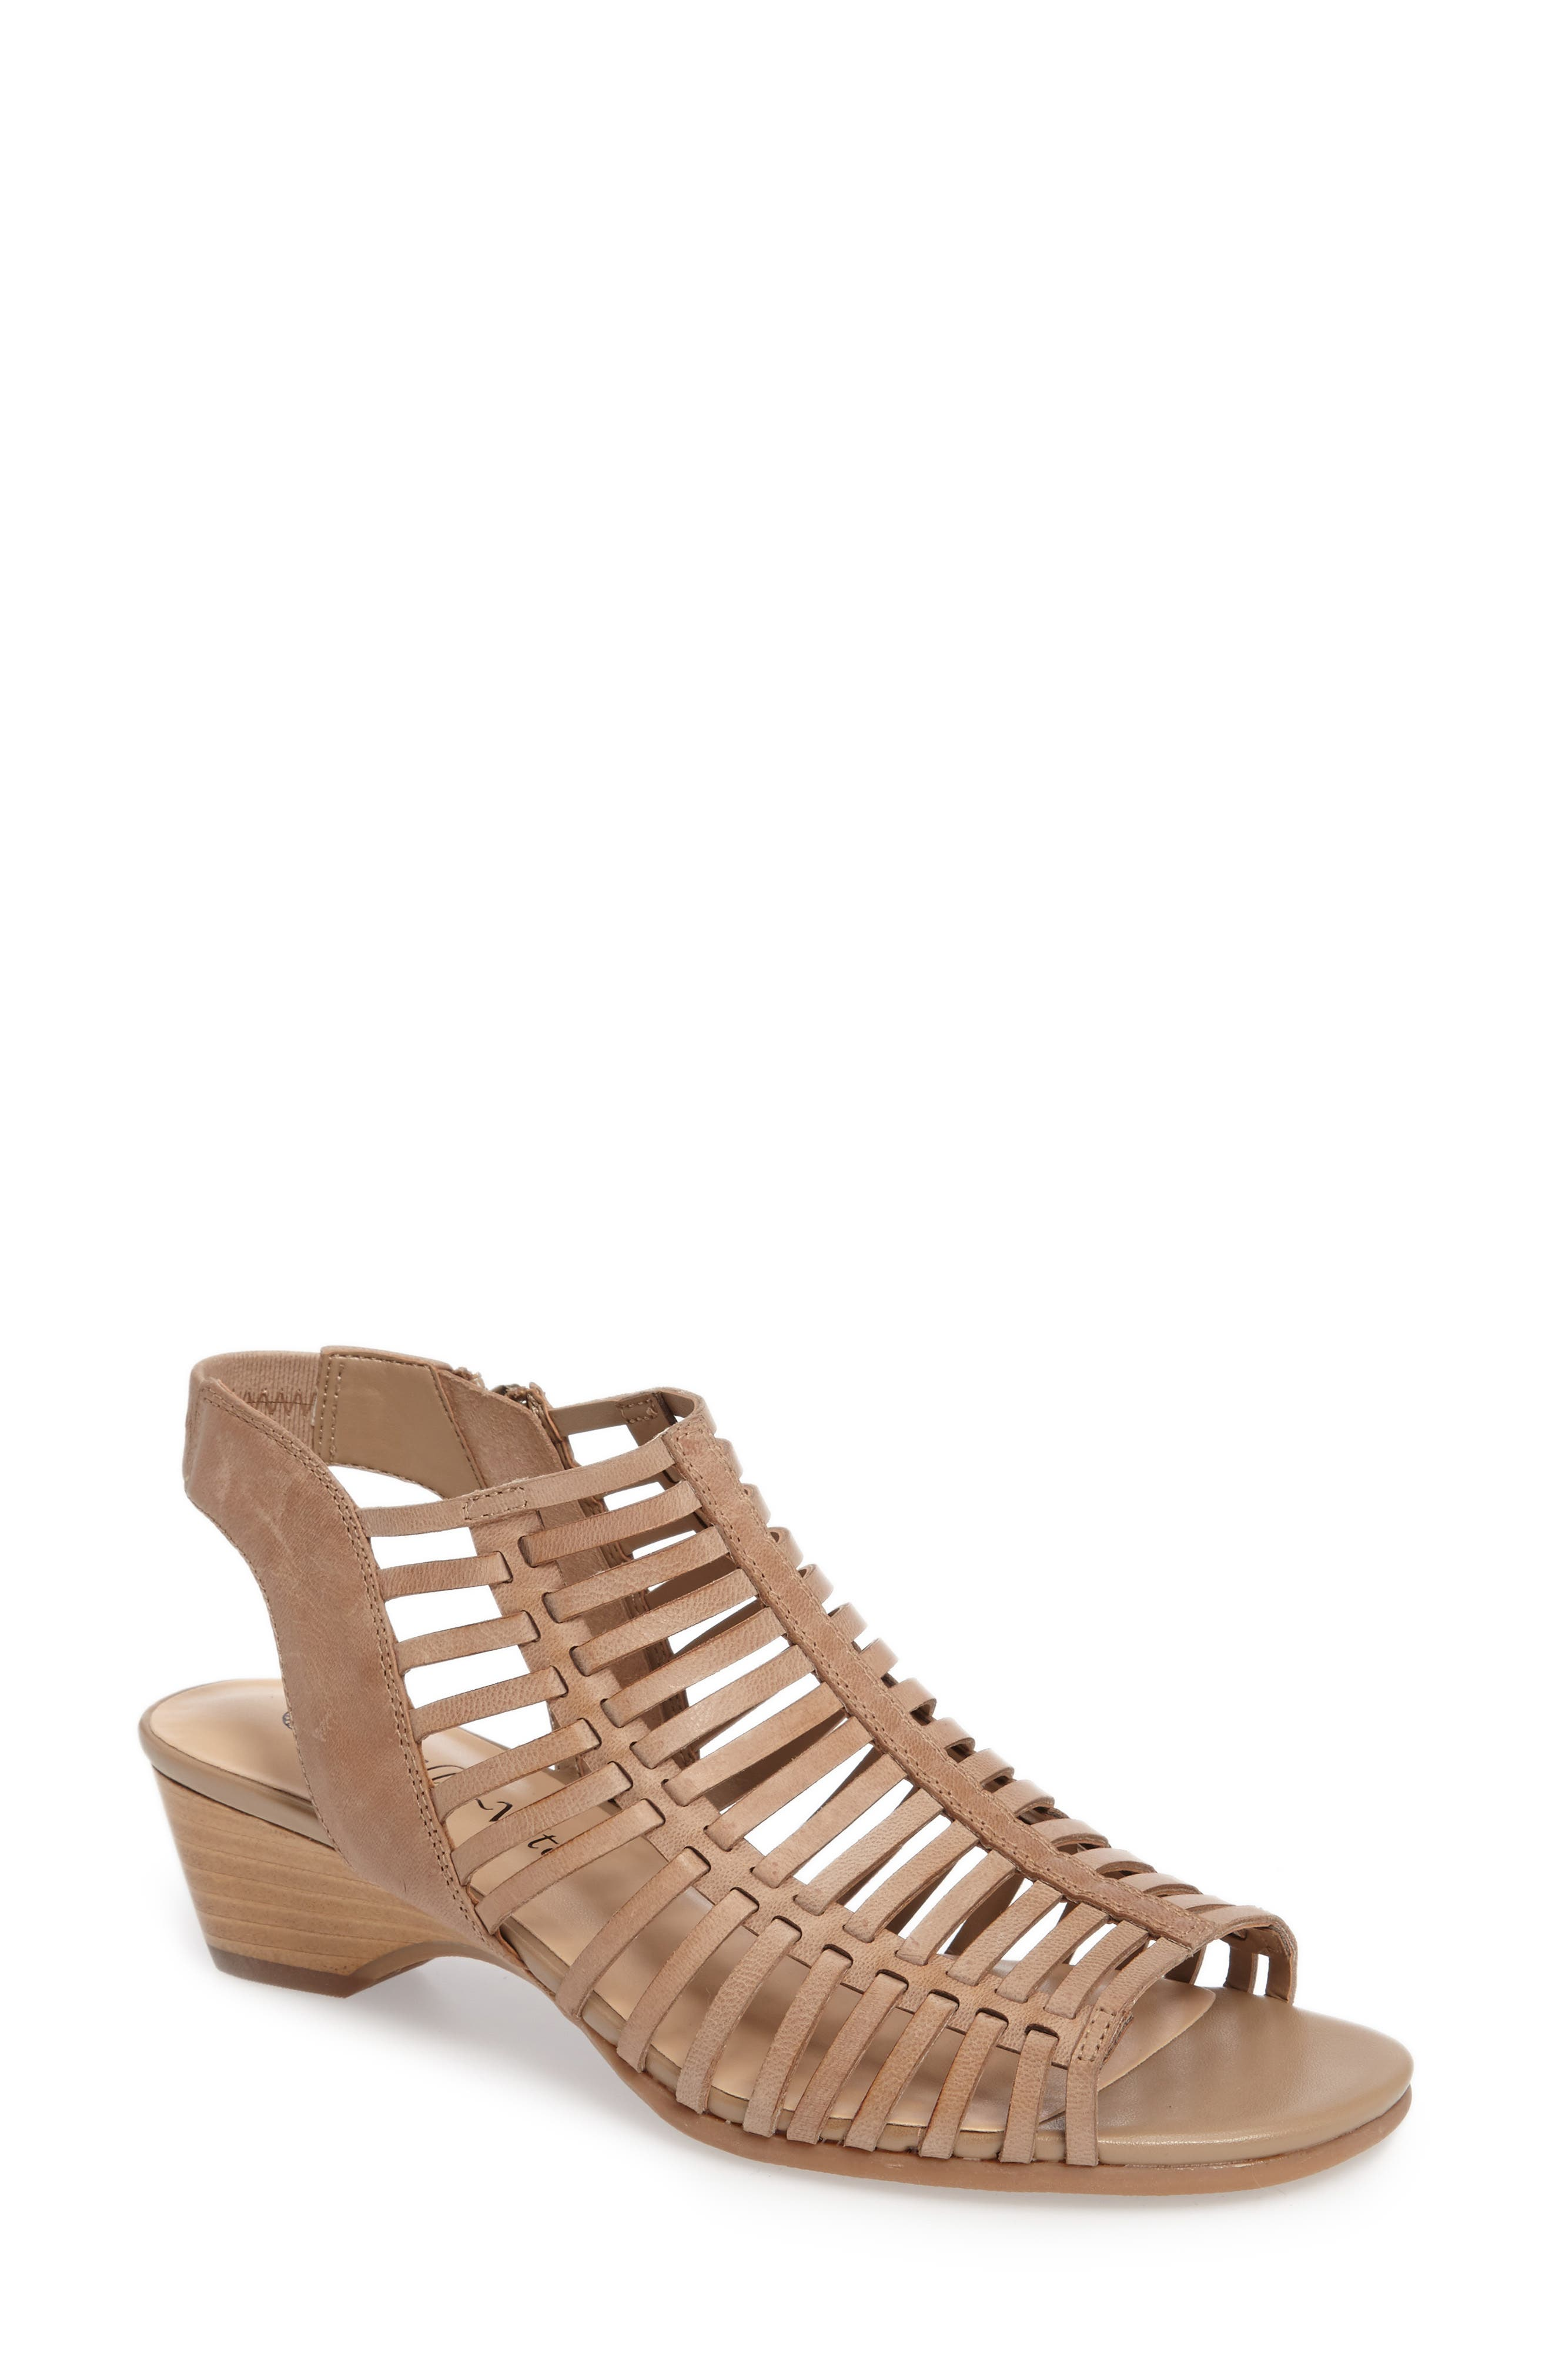 Pacey Cage Sandal,                             Main thumbnail 1, color,                             Saddle Leather